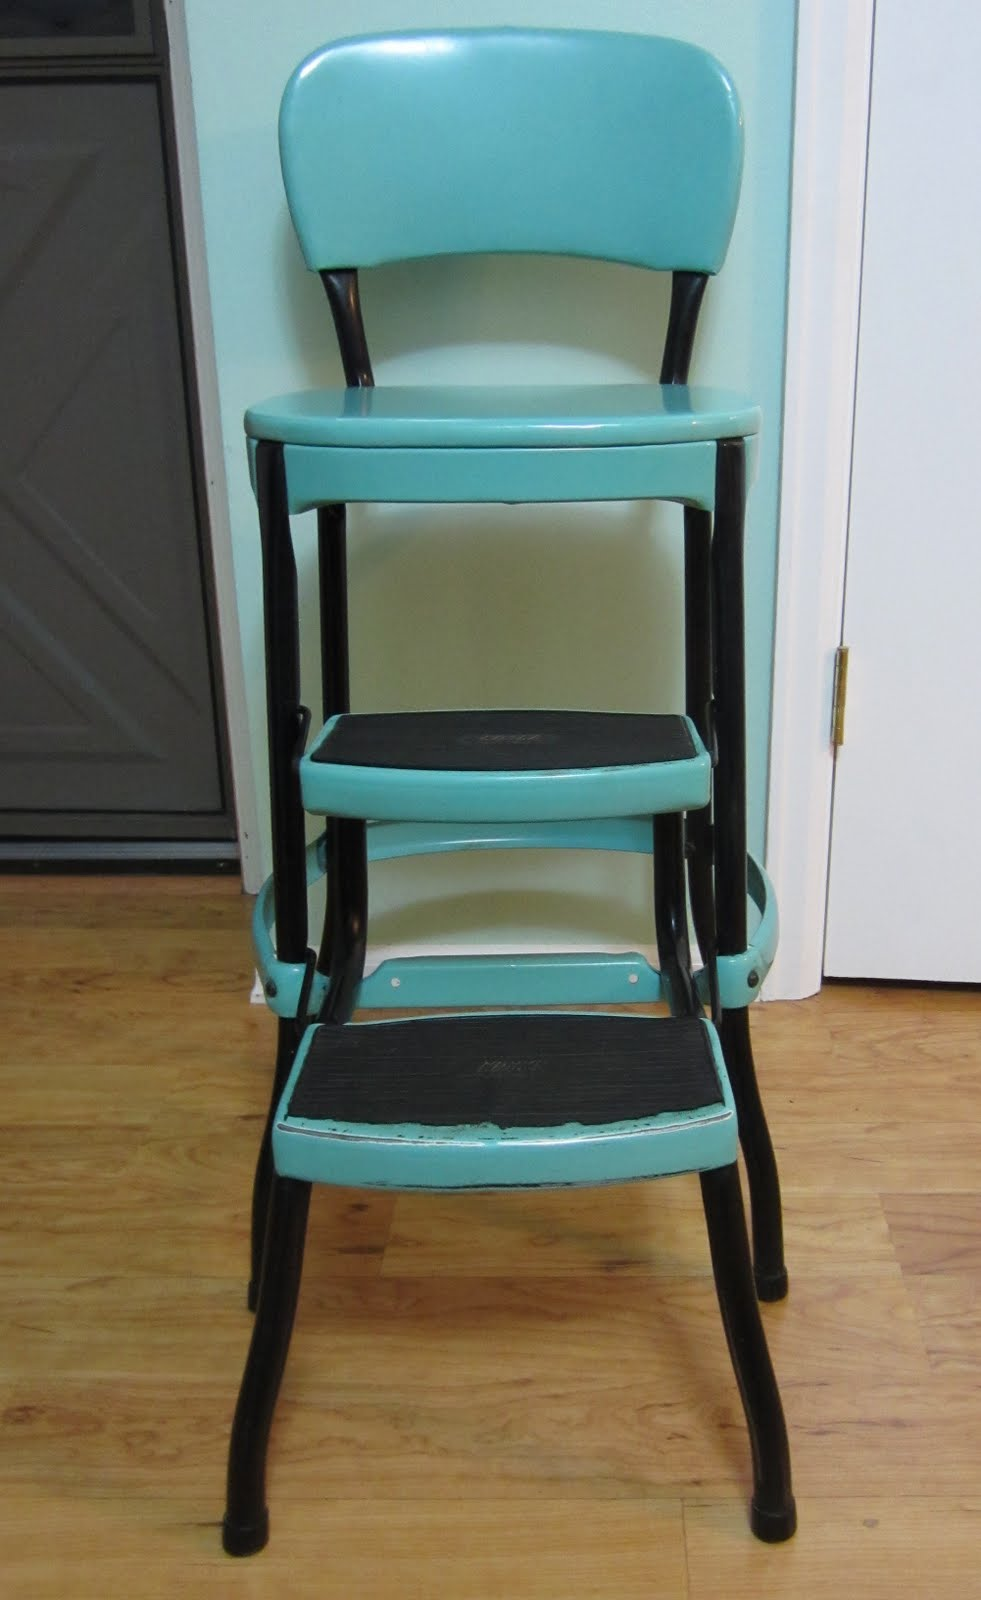 kitchen stool chair vintage cosco stool step stool. Black Bedroom Furniture Sets. Home Design Ideas